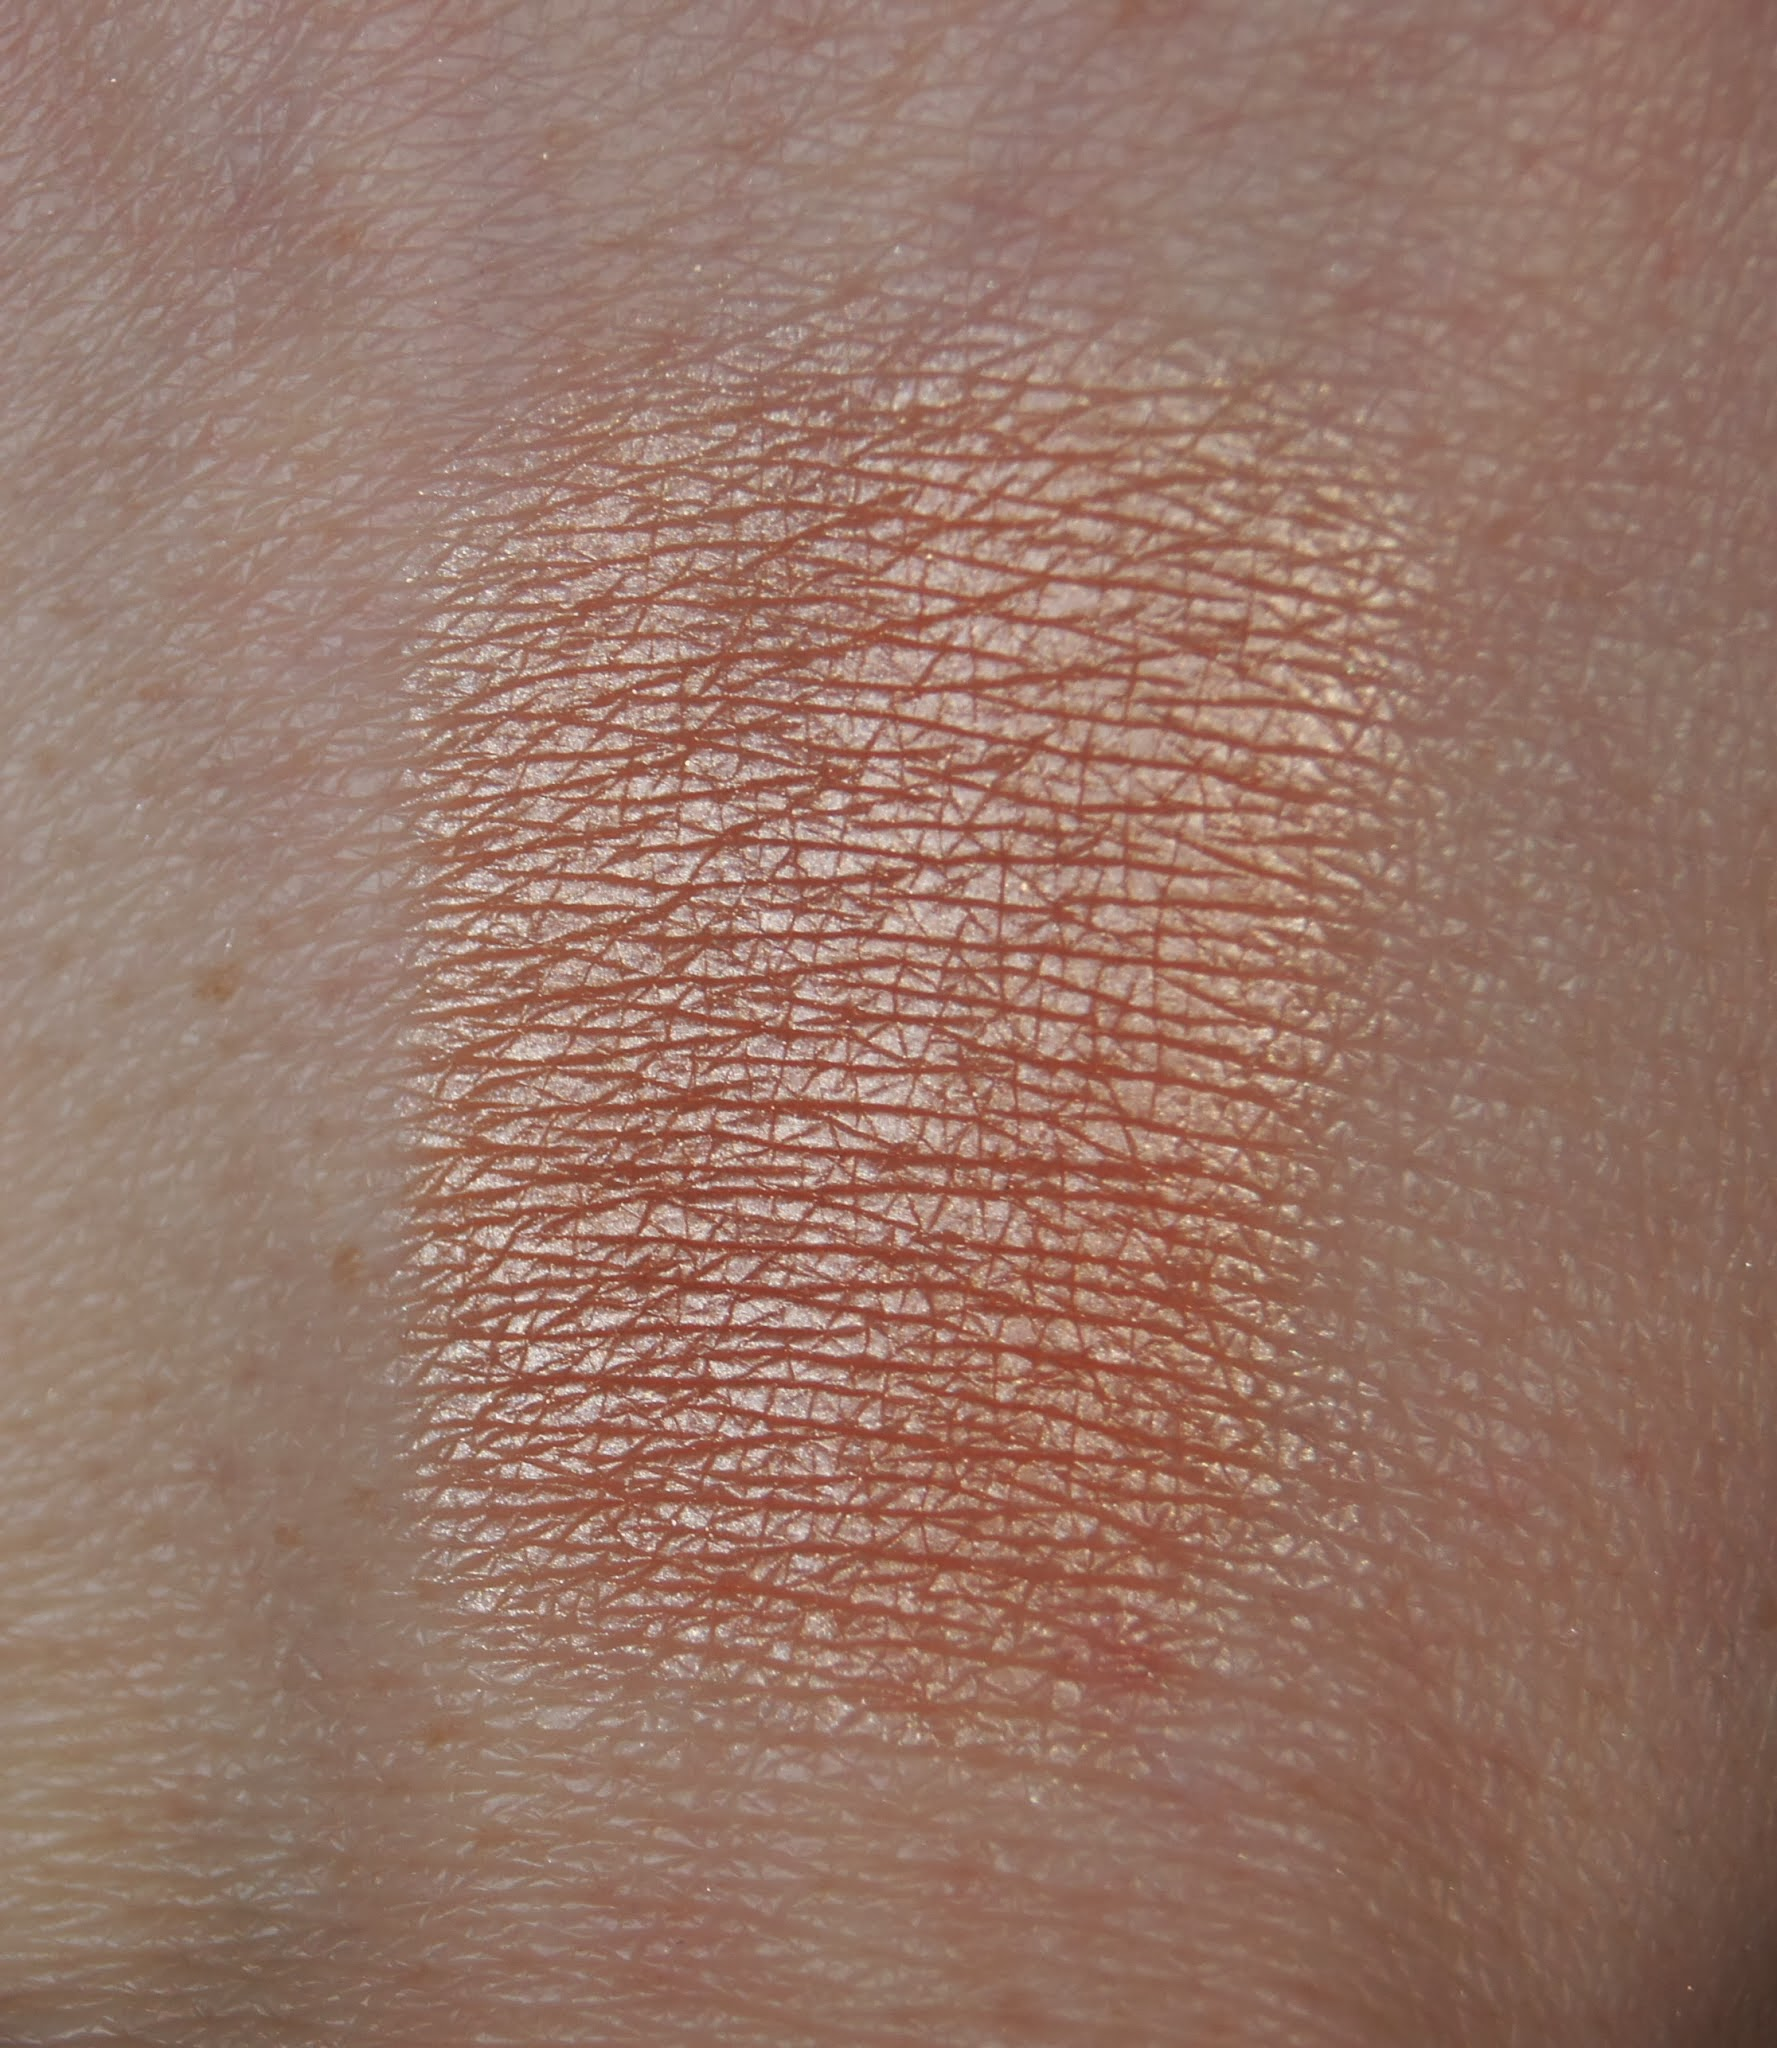 dior poudre shimmer amber diamond highlighter swatch